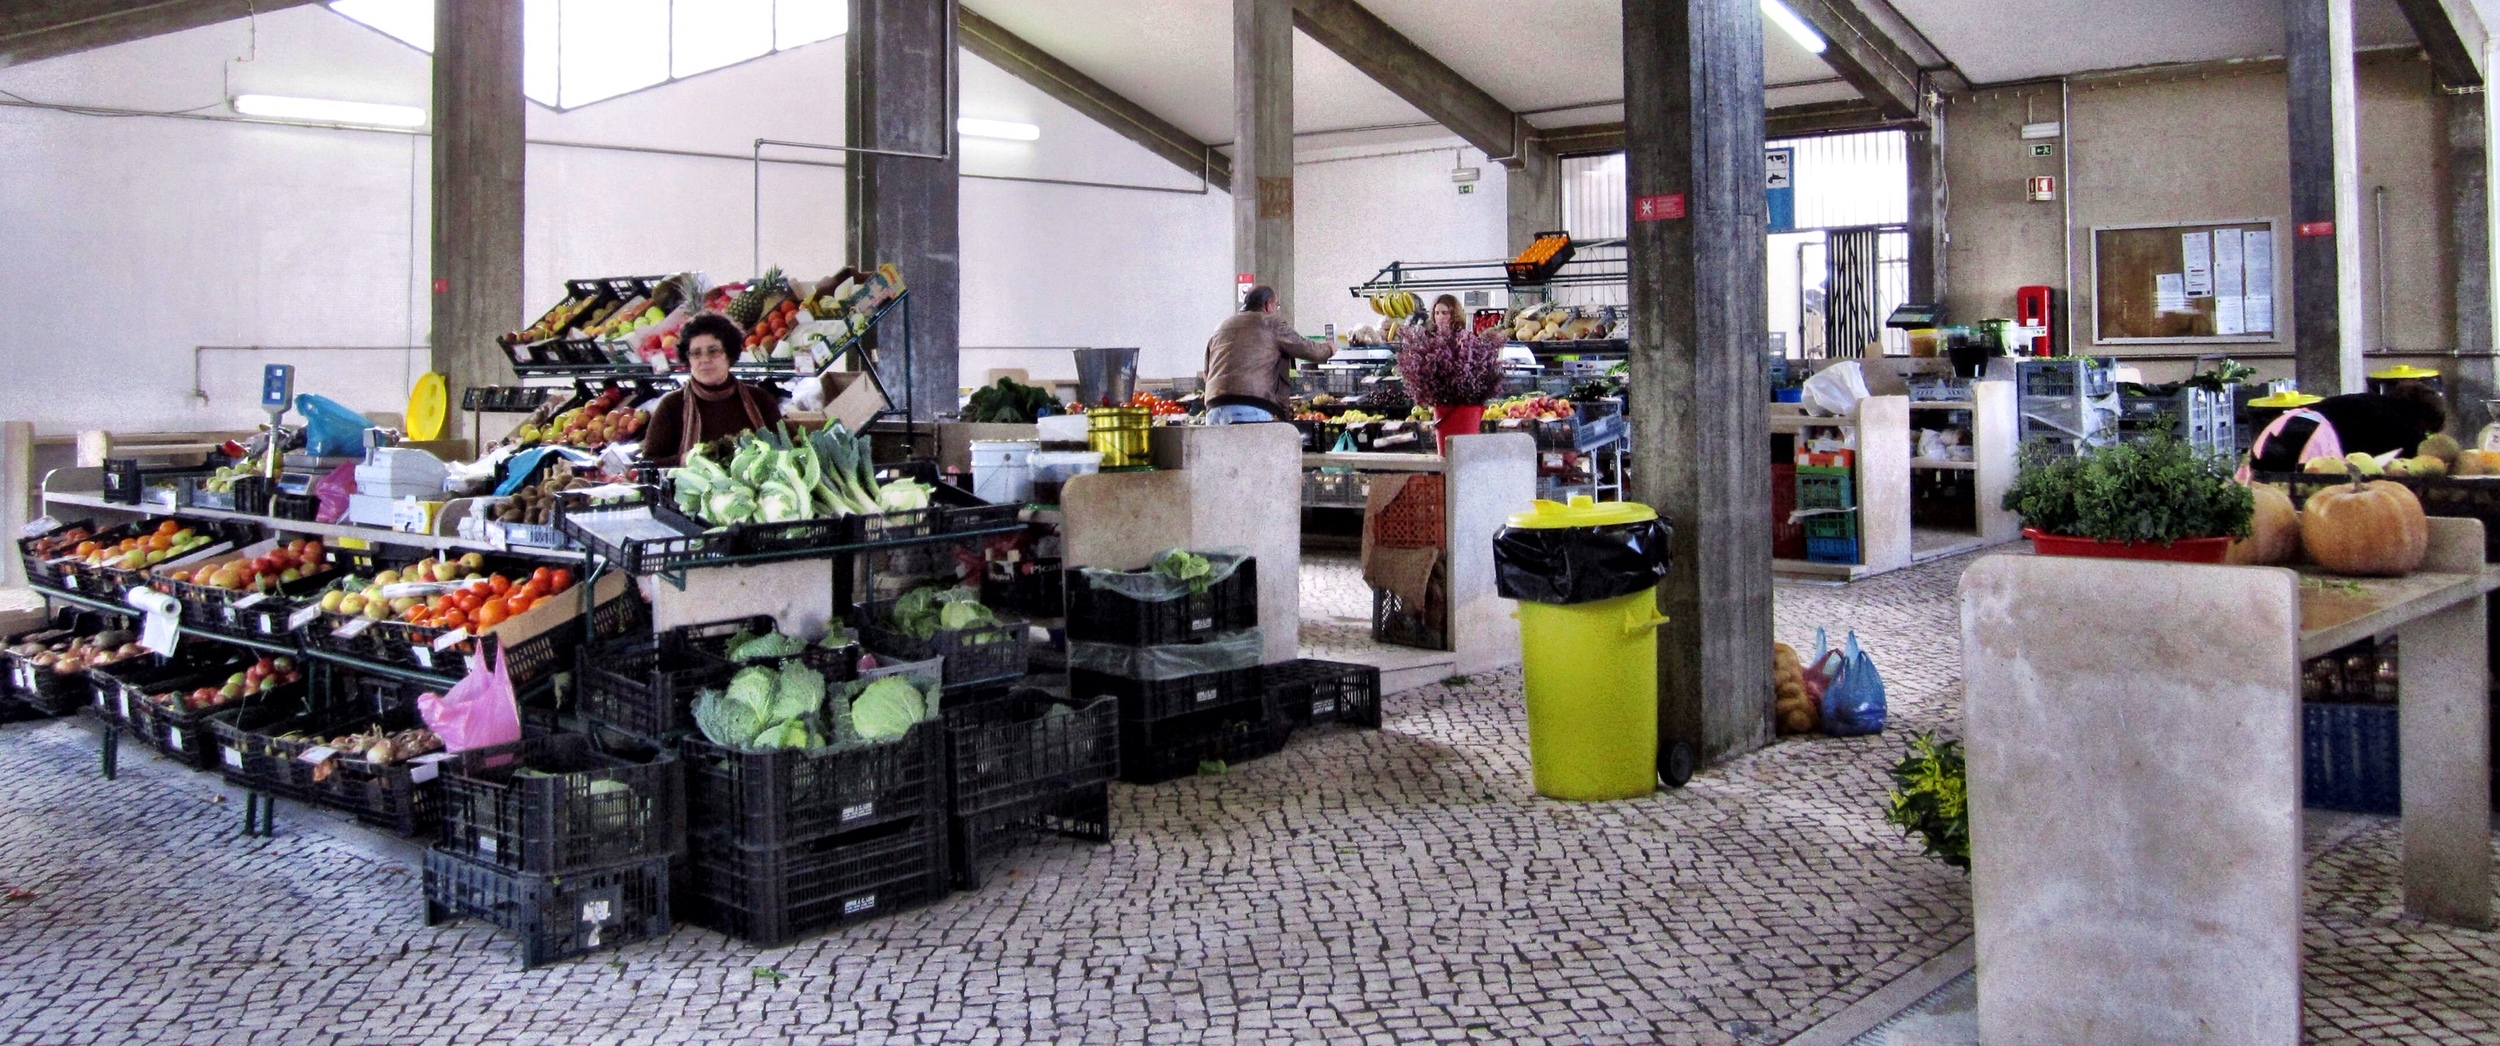 A quick stop at a local market in Sao Martinho do Porto turns up an amazing variety of fresh veg for a last minute supper